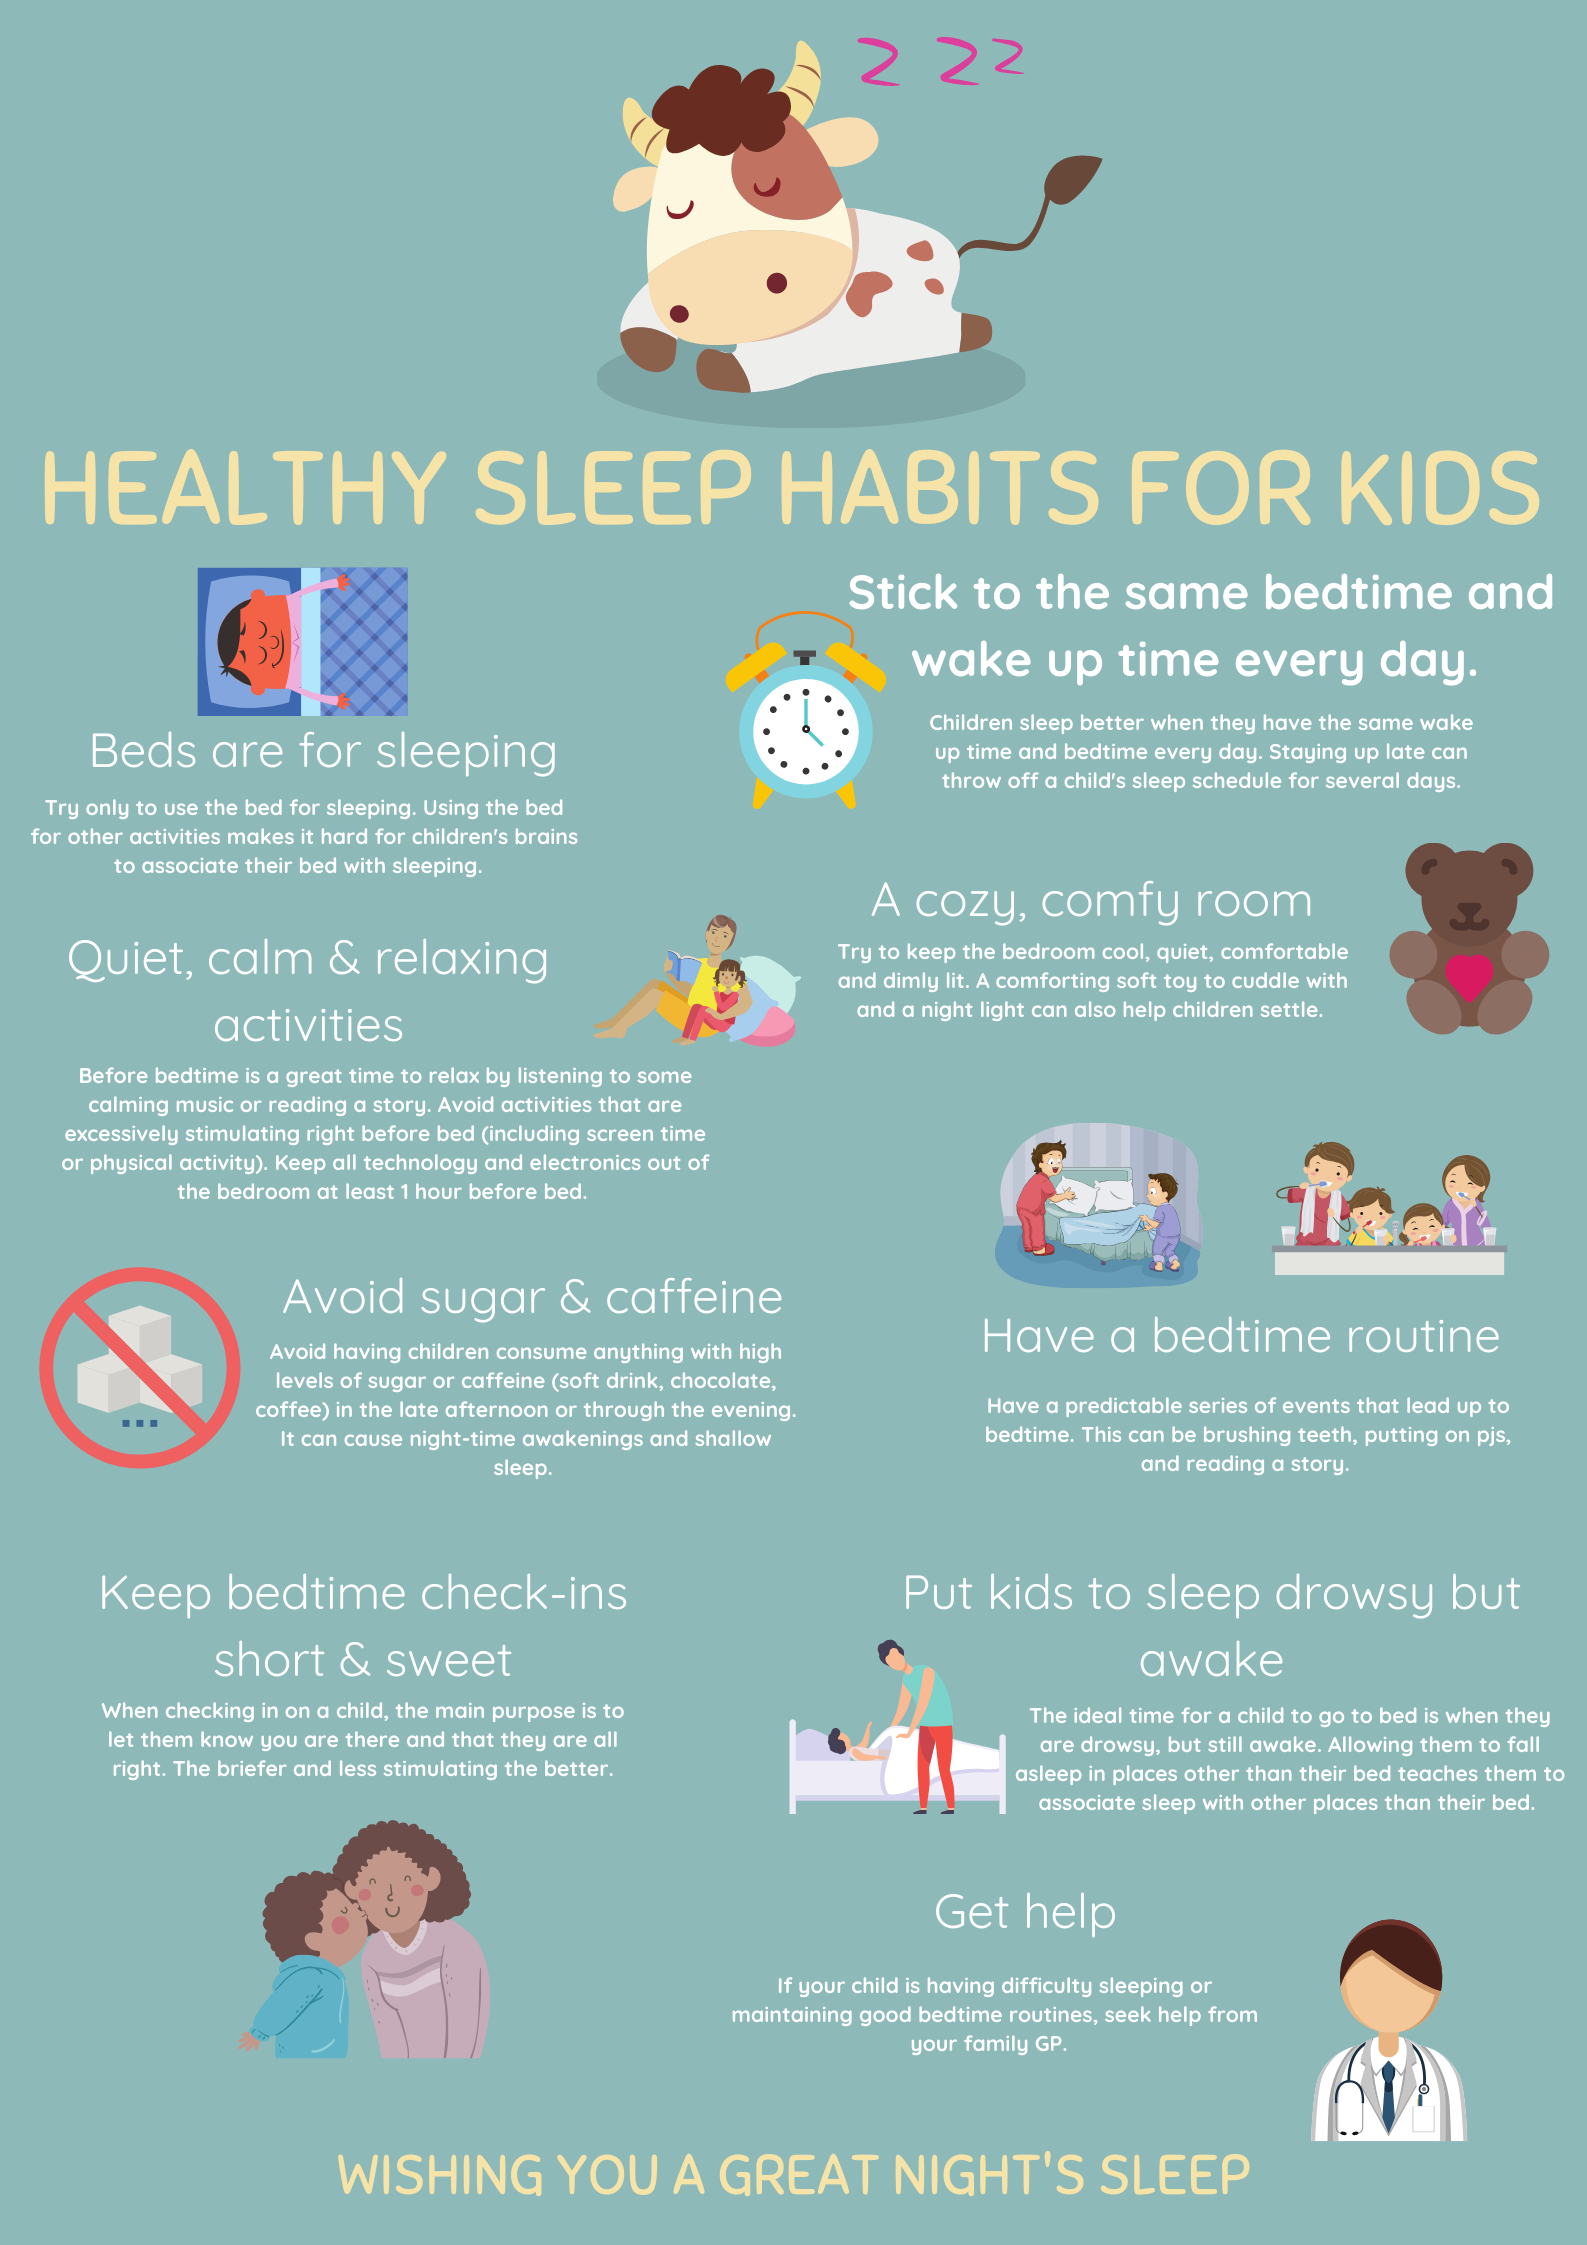 Healthy Sleep habits for kids.png